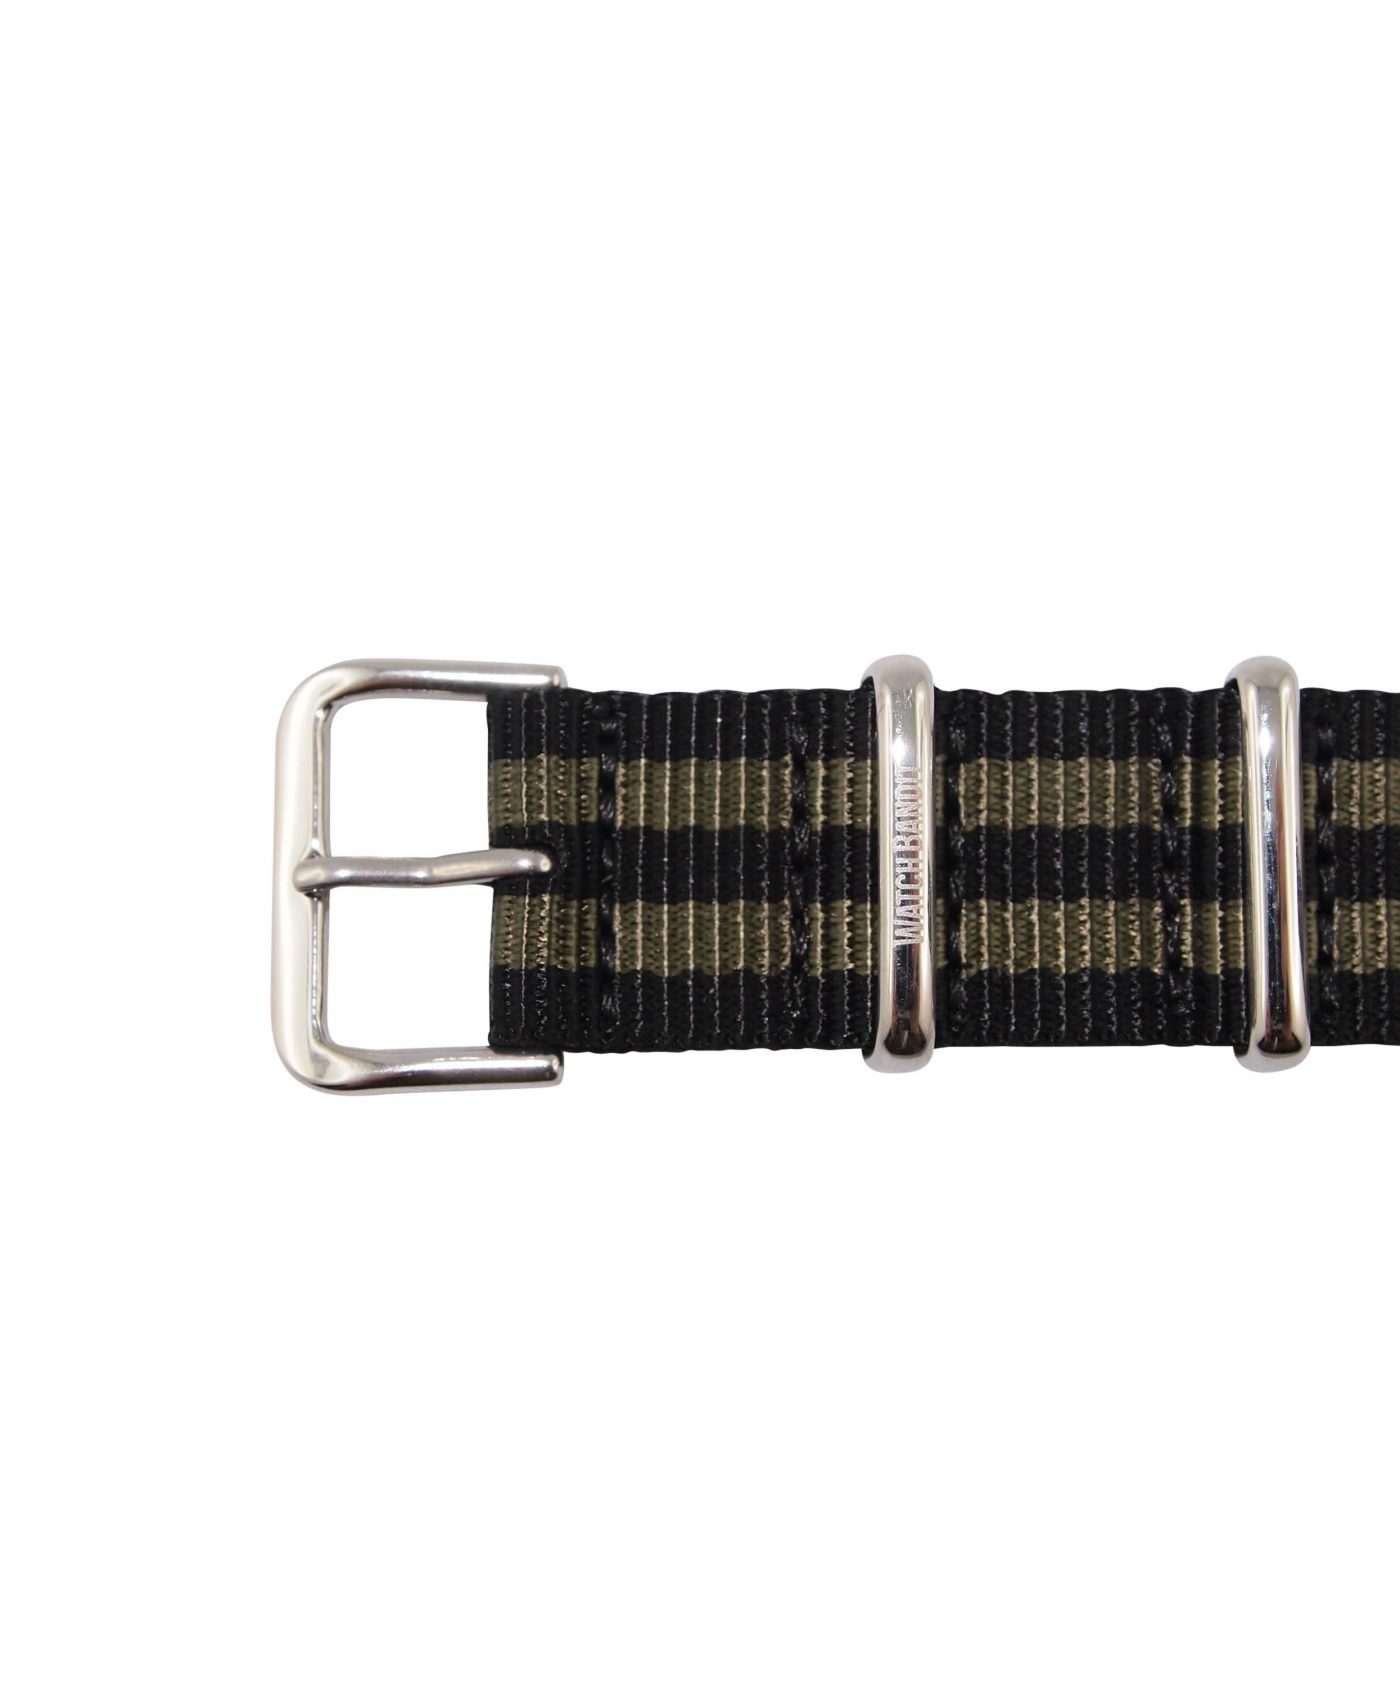 Nato Strap | Black & Green | Polished | 18 mm